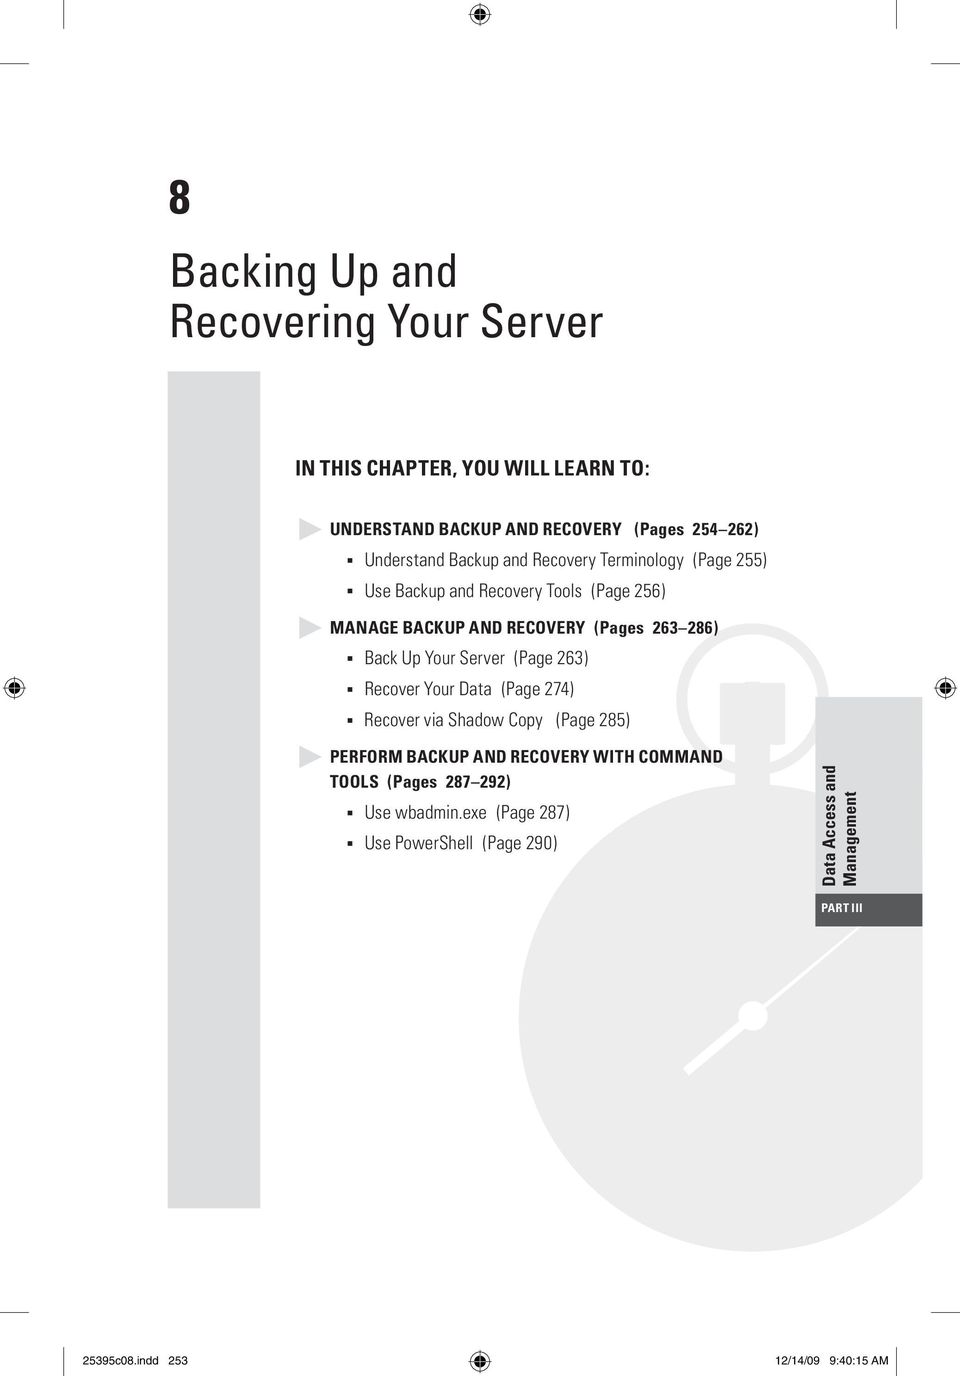 Your Server (Page 263) n Recover Your Data (Page 274) n Recover via Shadow Copy (Page 285) Perform Backup and Recovery with Command 33 Tools